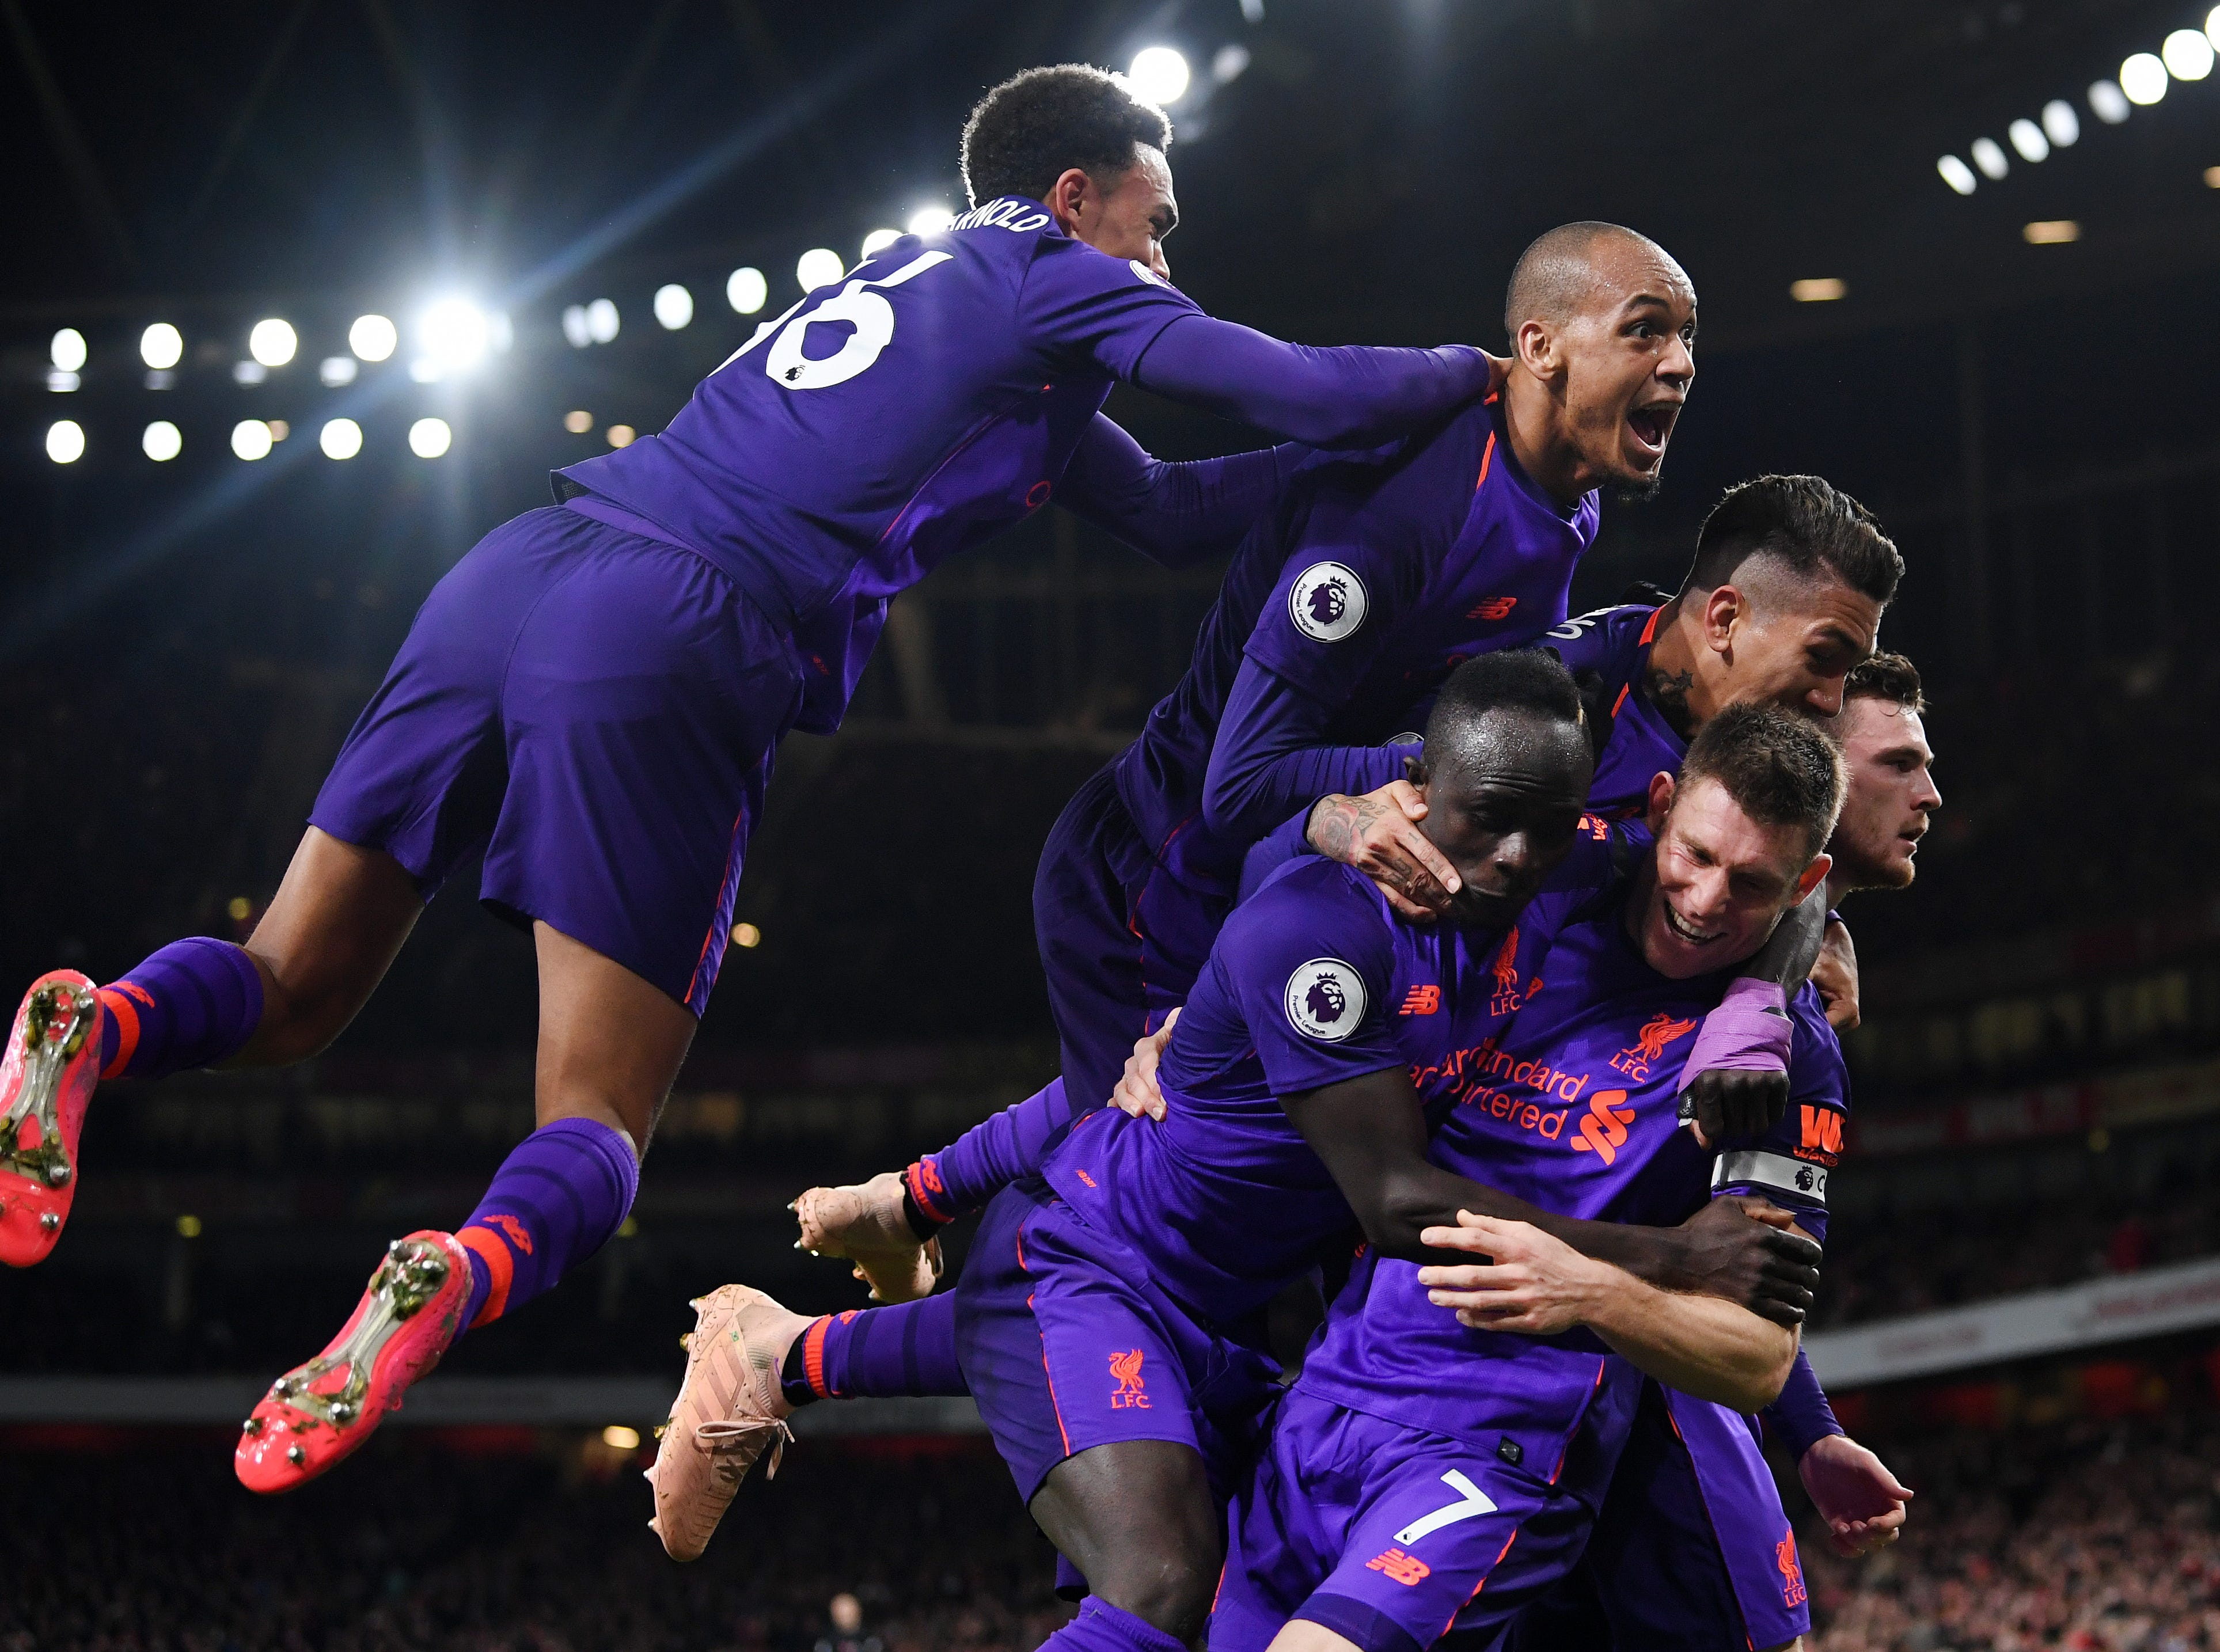 Liverpool celebrates scoring the hopenign goal against Arsenal.